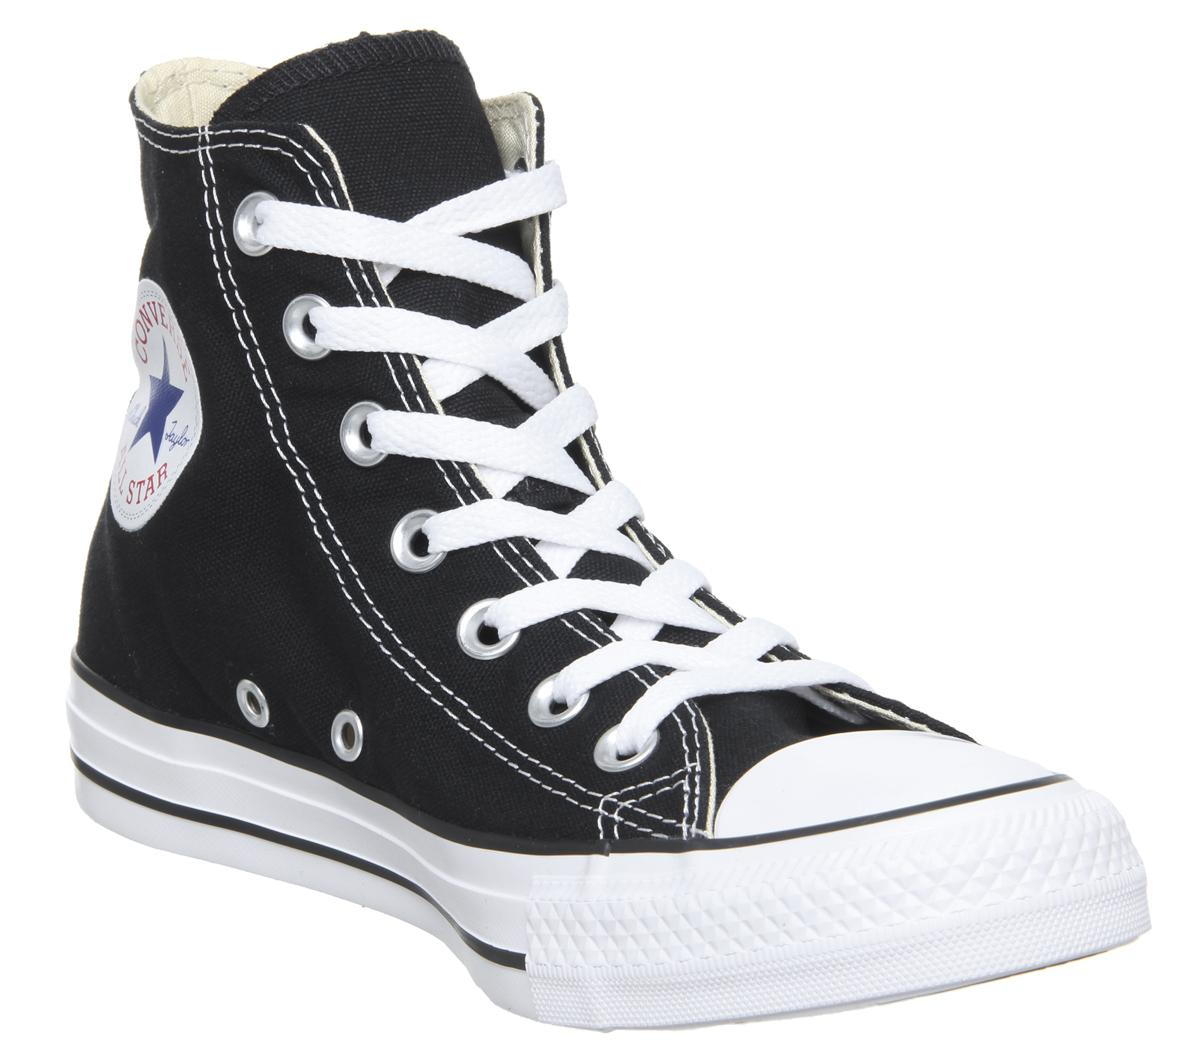 c827816c8a34 Converse All Star Hi Trainers Black Canvas - Unisex Sports